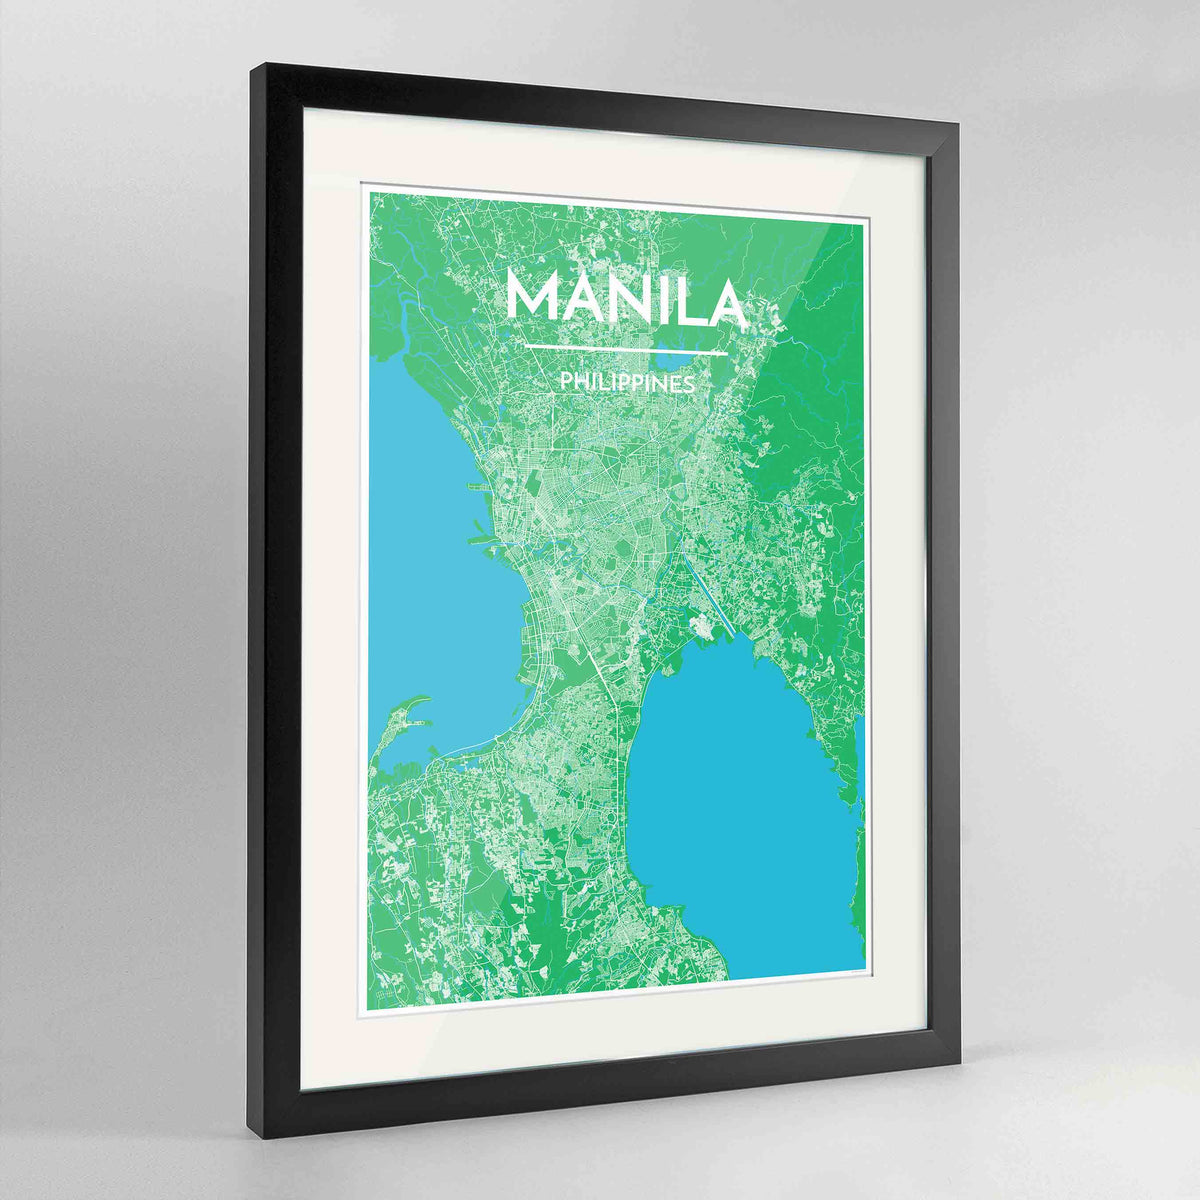 "Framed Manila Map Art Print 24x36"" Contemporary Black frame Point Two Design Group"